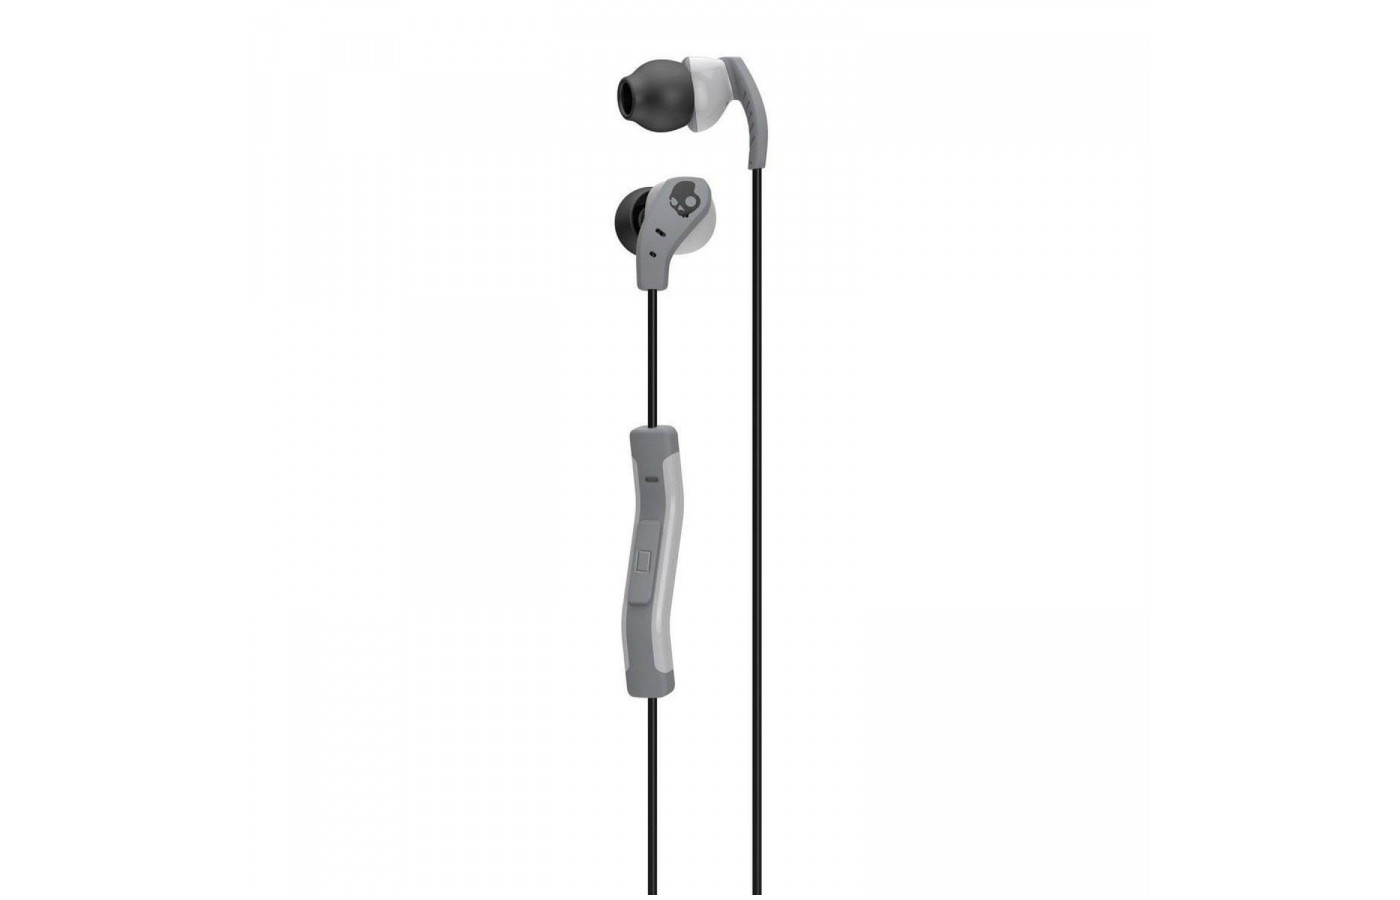 A side view of the Skullcandy Method.